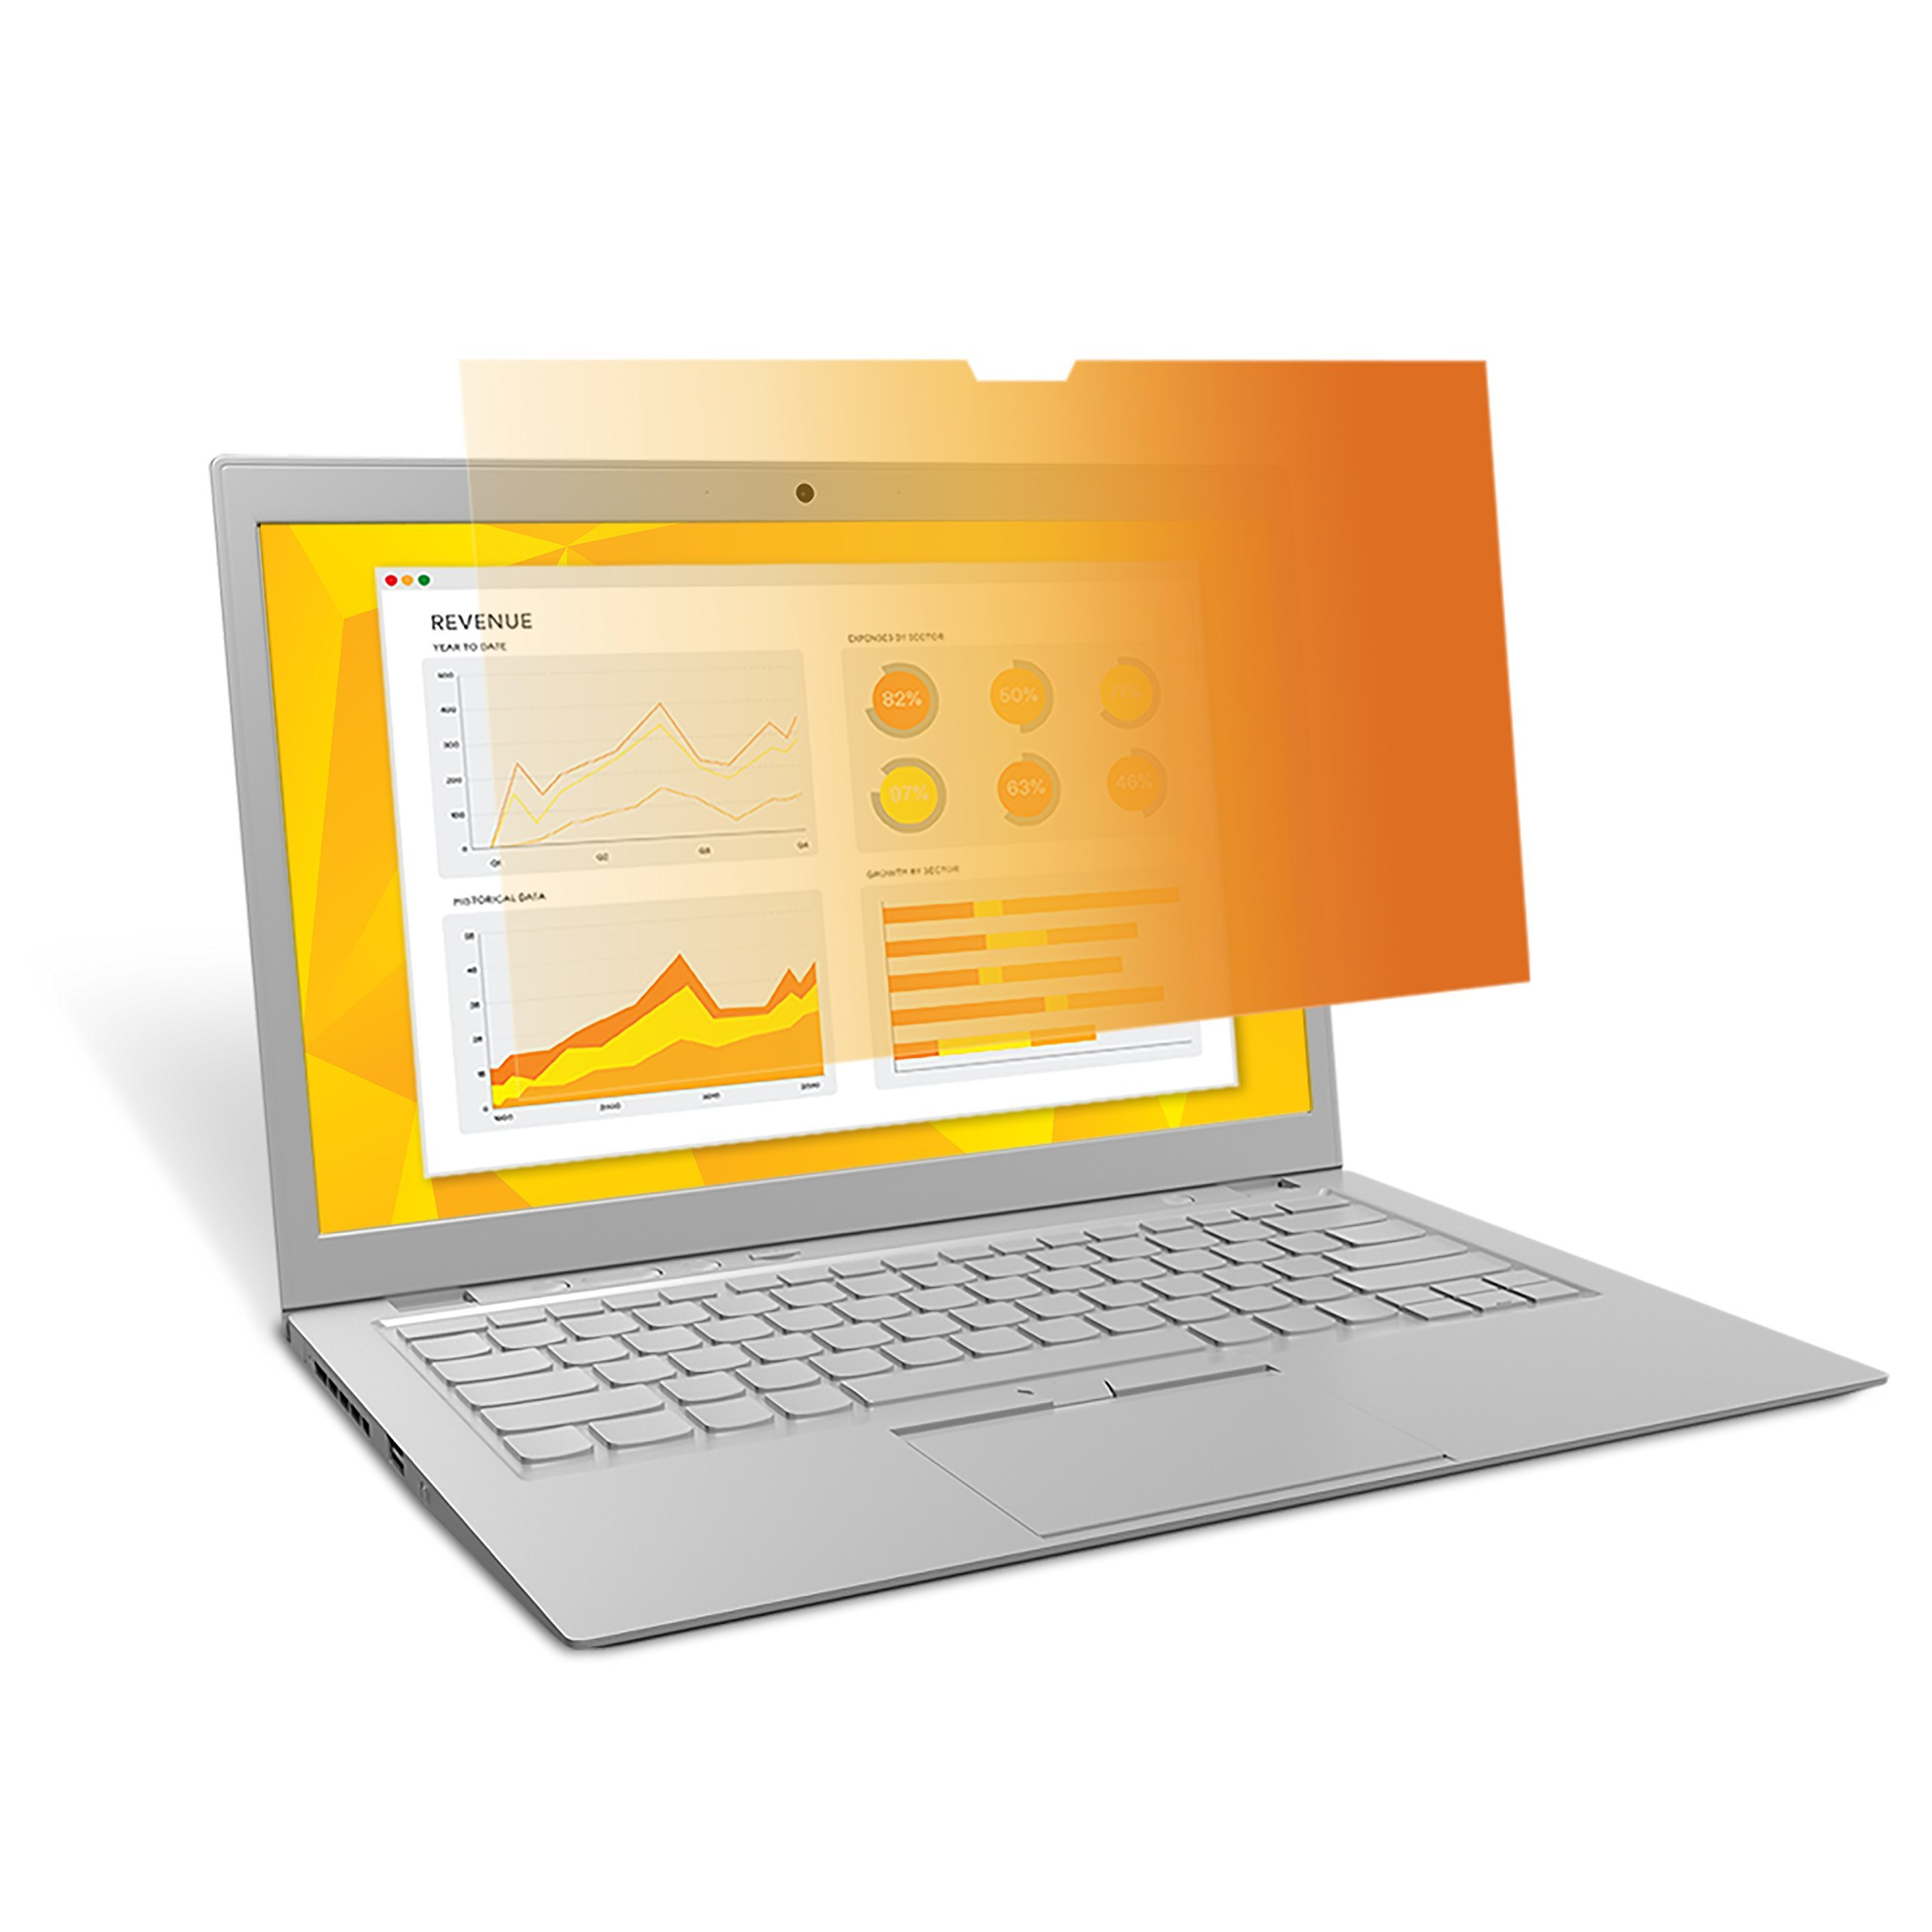 3M Gold Privacy Filter for 14'' Widescreen Laptop (GF140W9B)